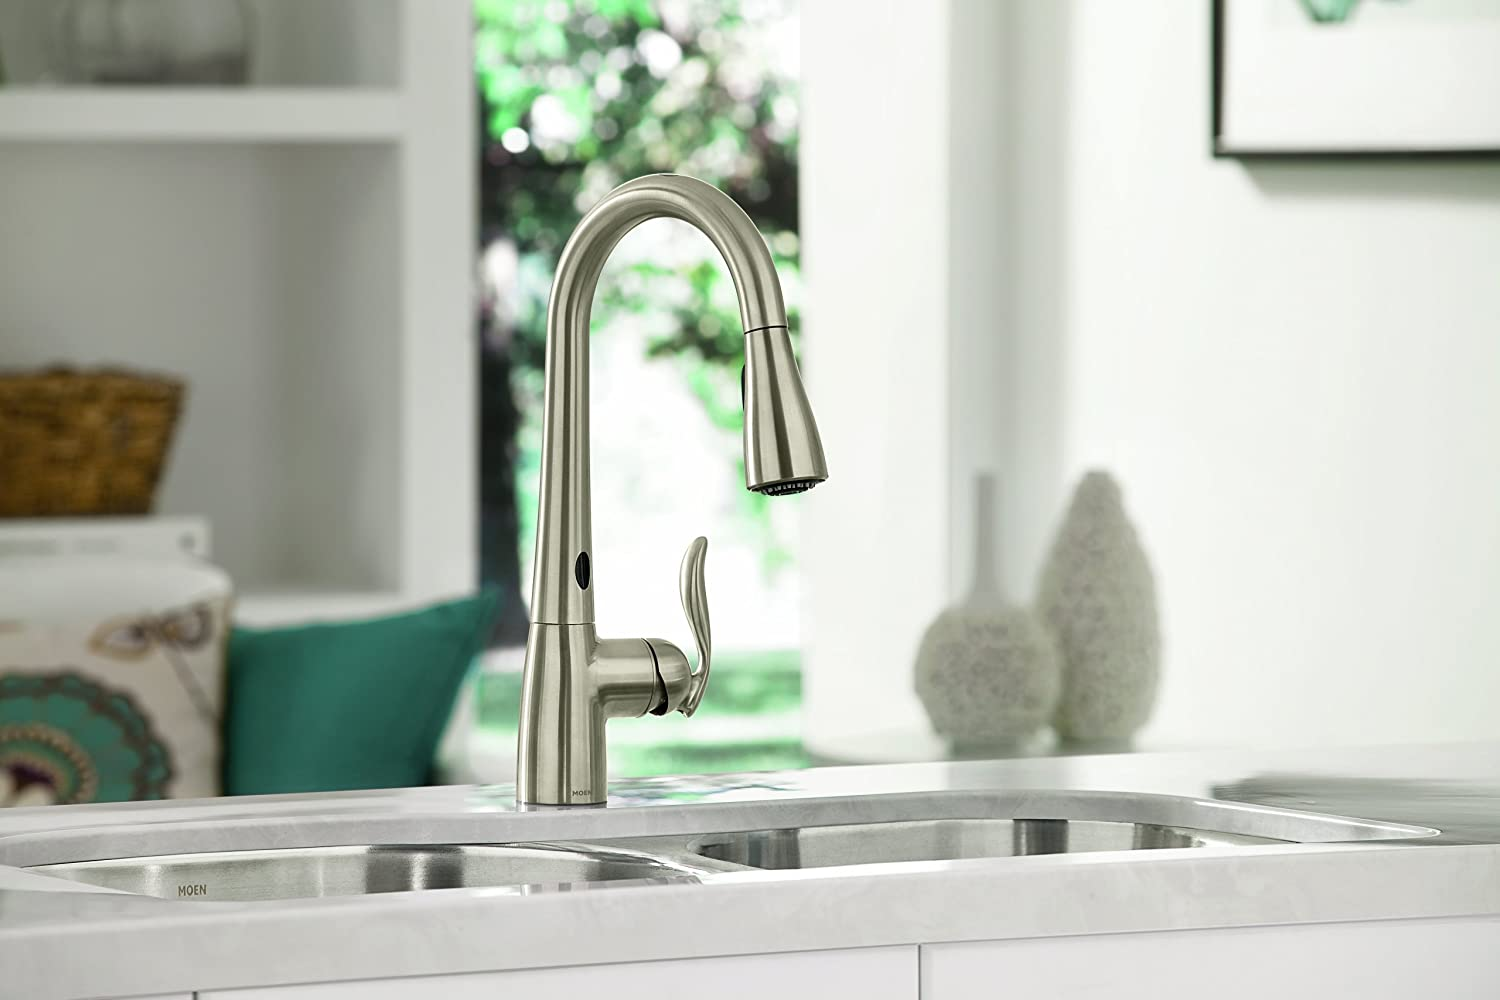 Choosing the right kitchen sink faucet